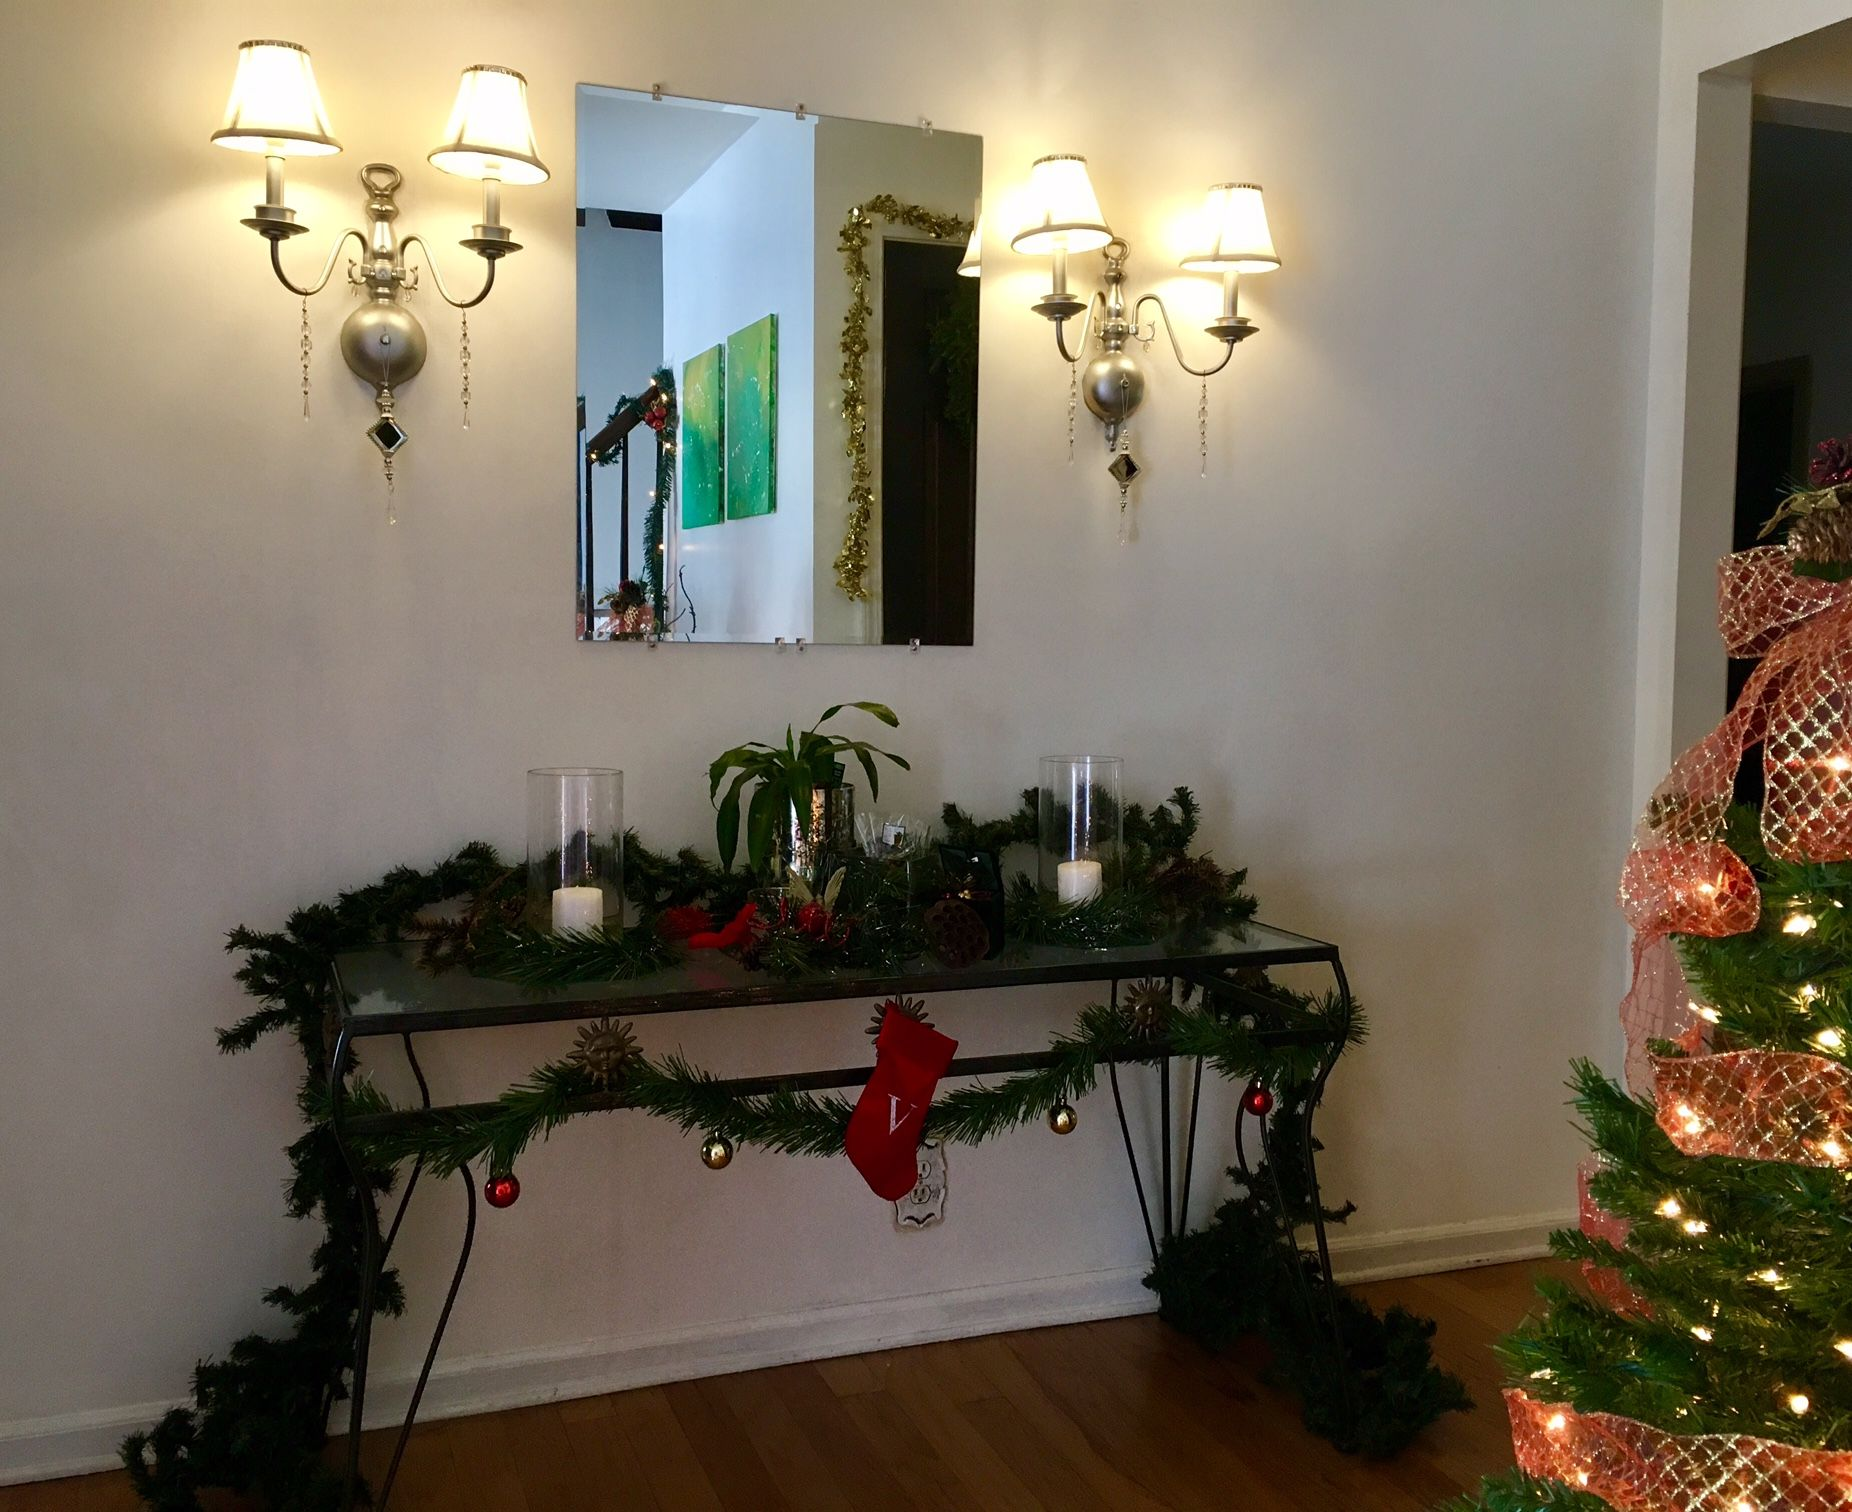 Our #foyer #sconces and #tablescape look gorgeous during the day as well. I love our #ministocking #monogrammed with a V for our #family name. ❤️🎄 #garland #stockings #christmasdecor #christmastime #christmas #holidaydecor #holidayseason